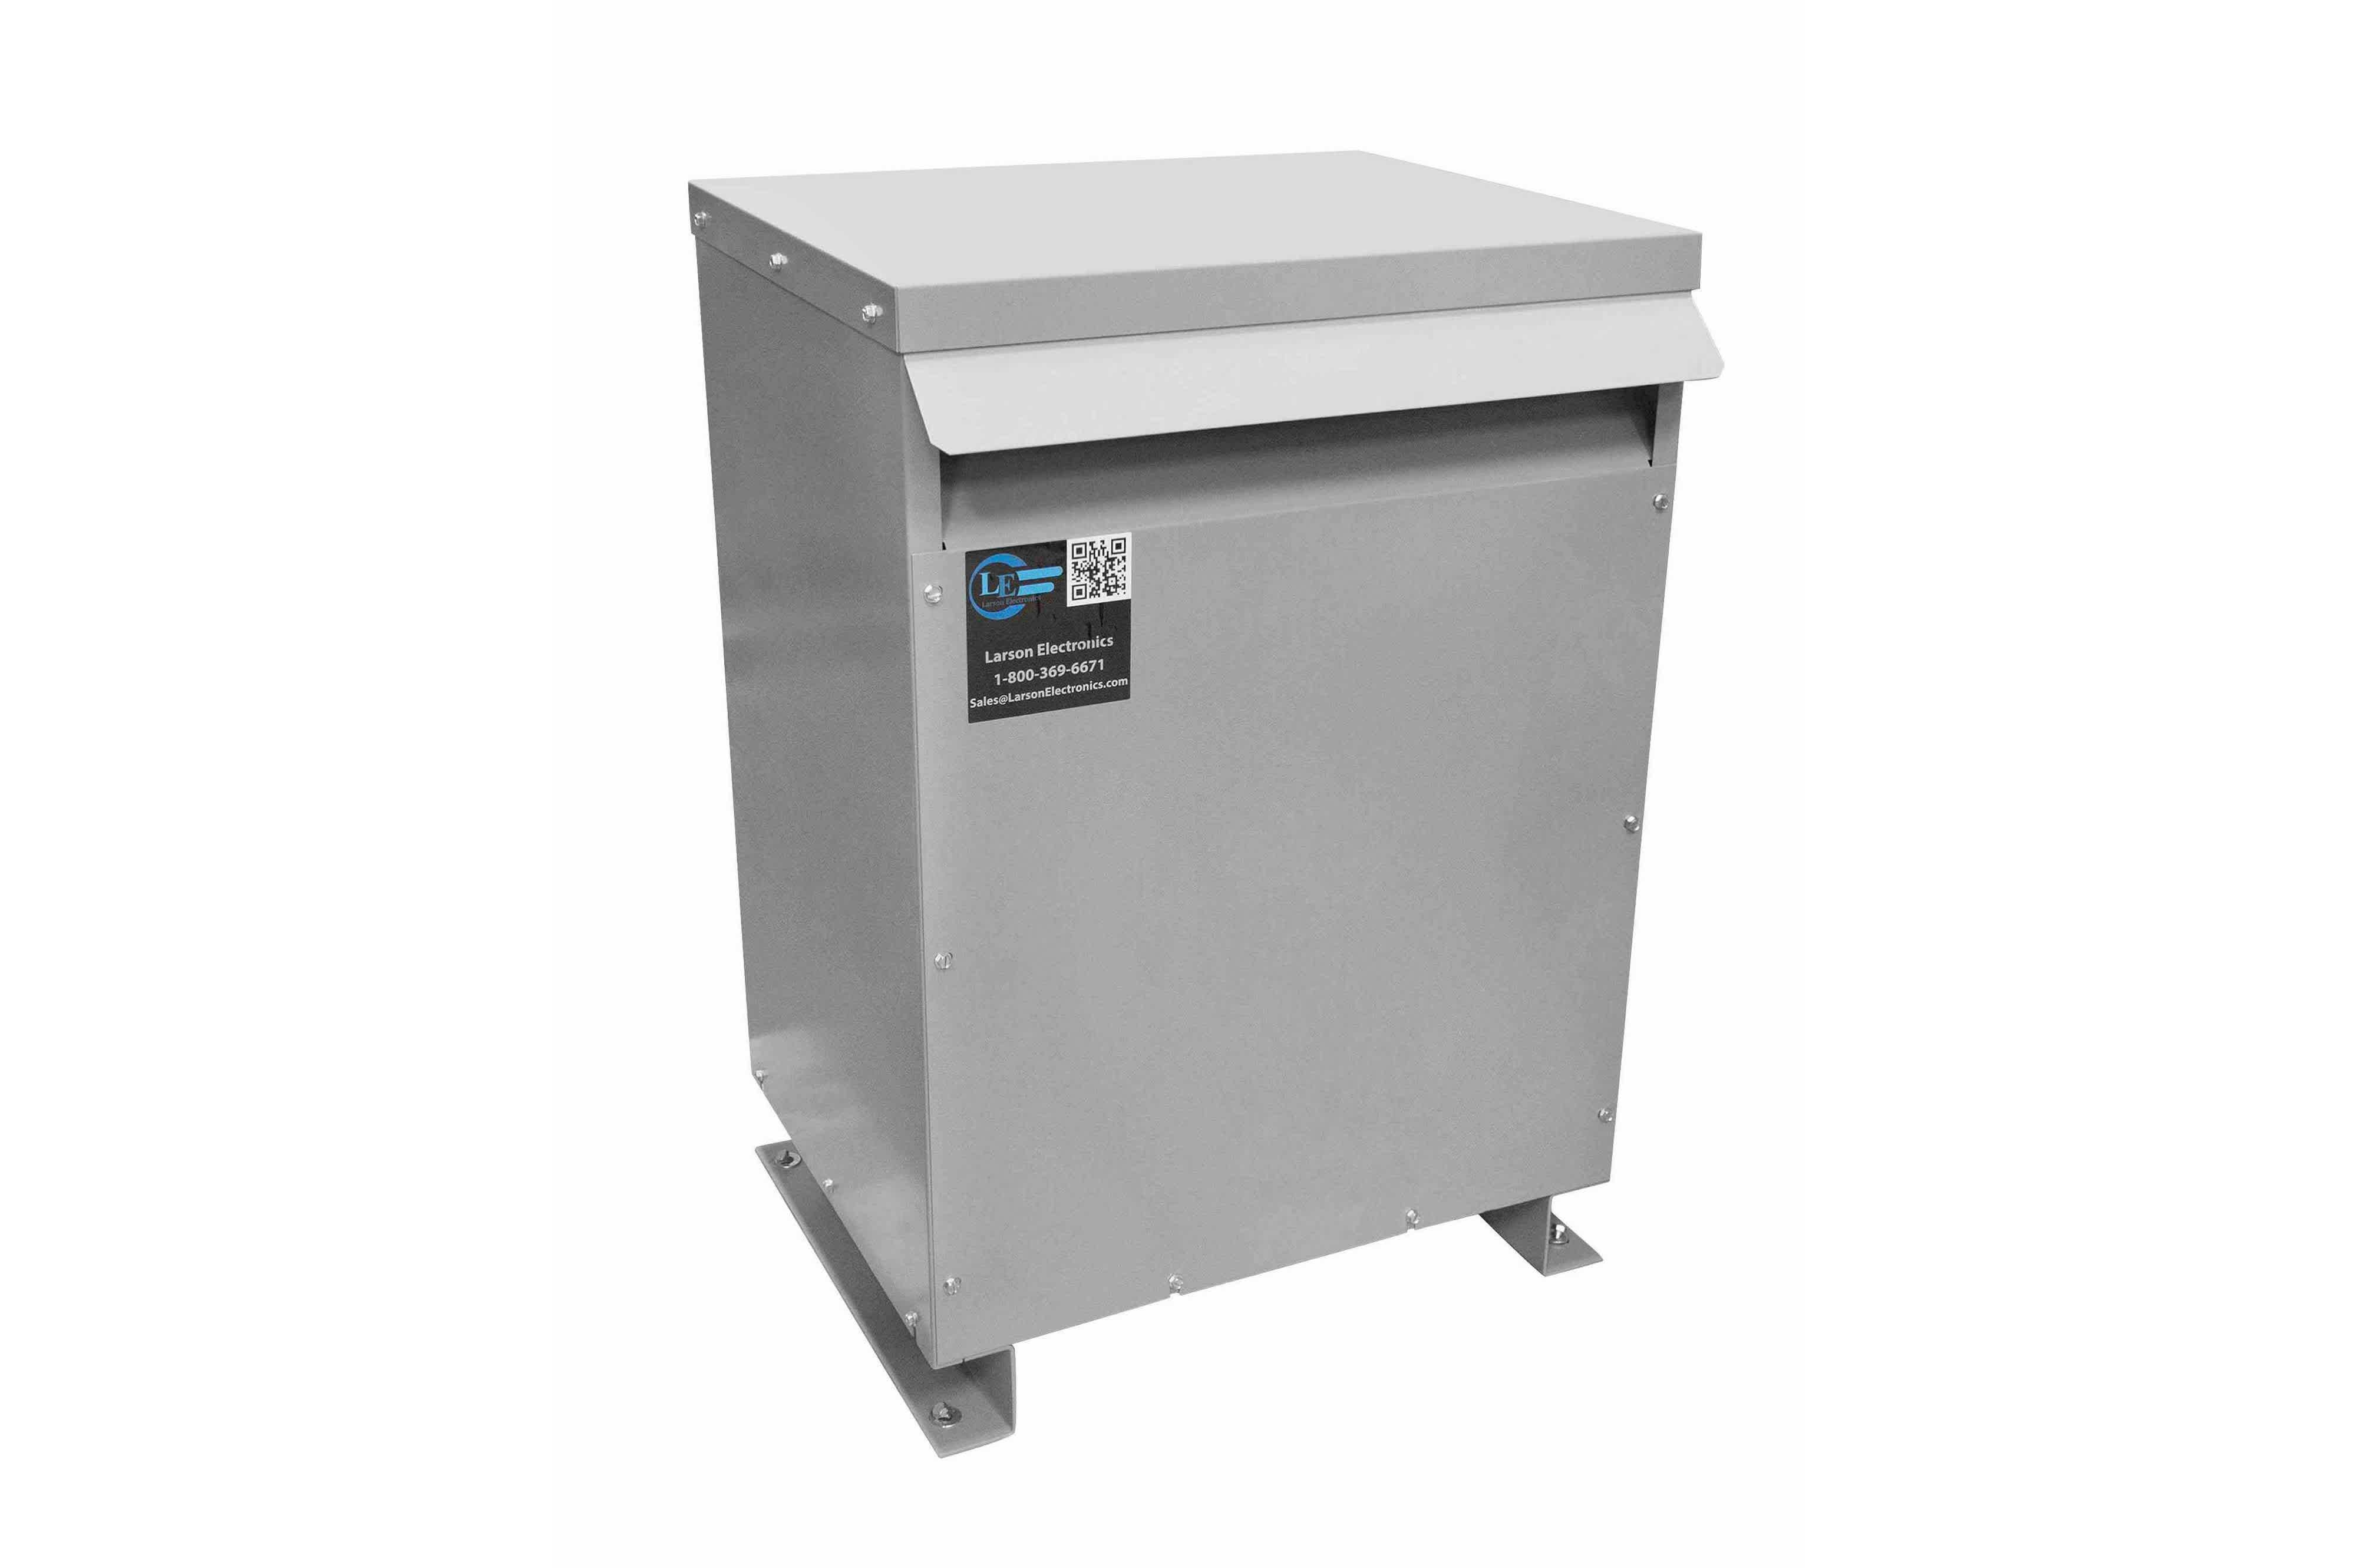 70 kVA 3PH Isolation Transformer, 380V Wye Primary, 480Y/277 Wye-N Secondary, N3R, Ventilated, 60 Hz